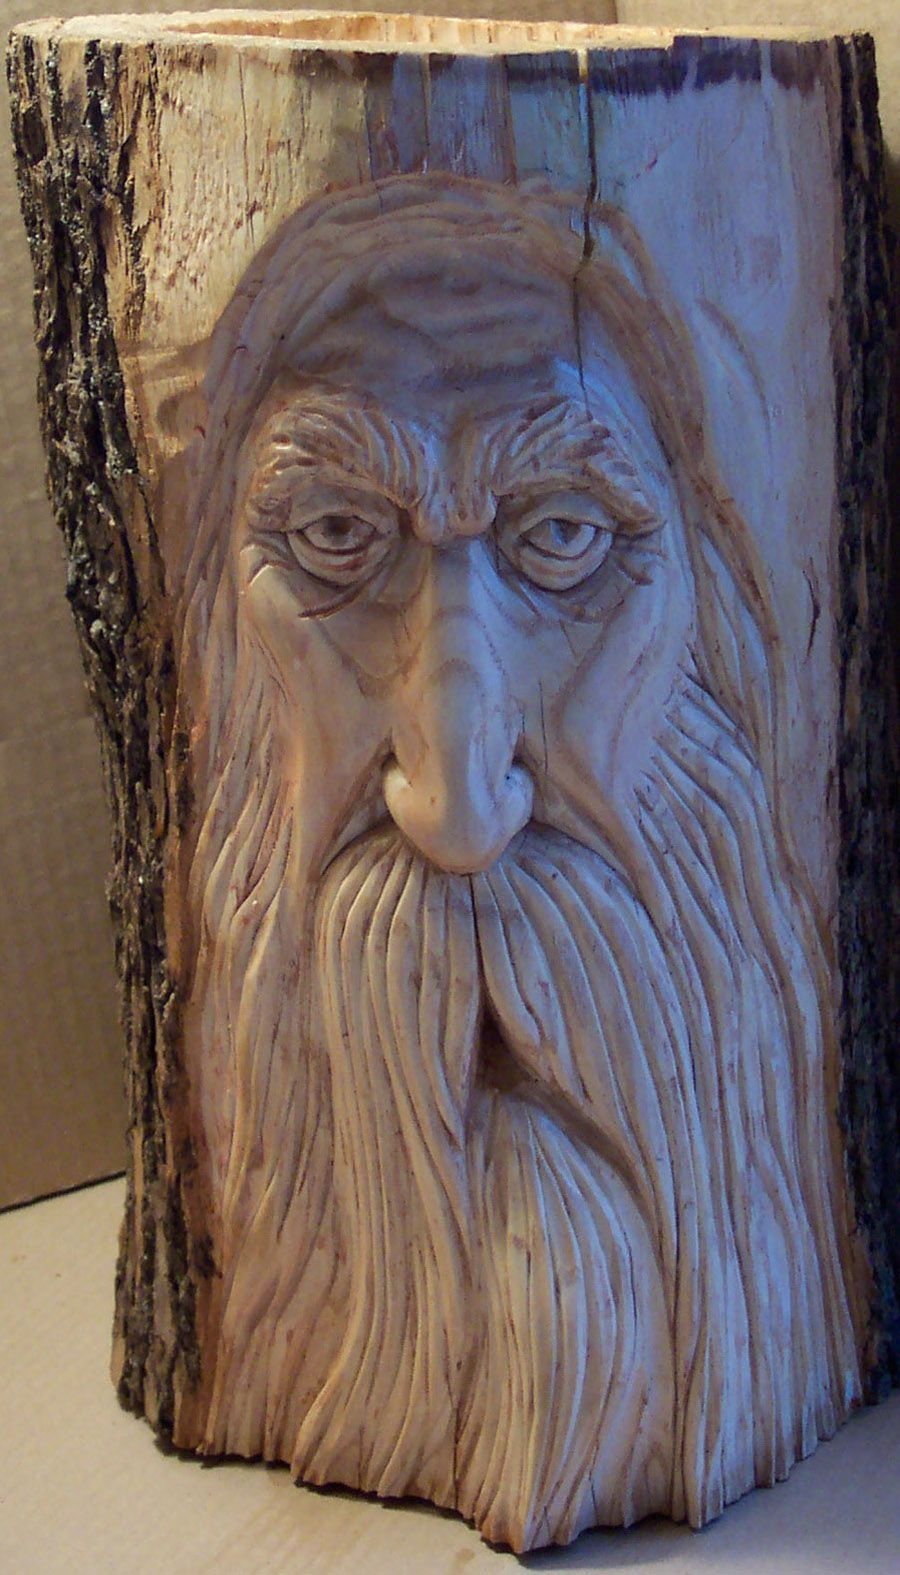 Woodspirit Carving By Greg Hand Faces Wood Carving